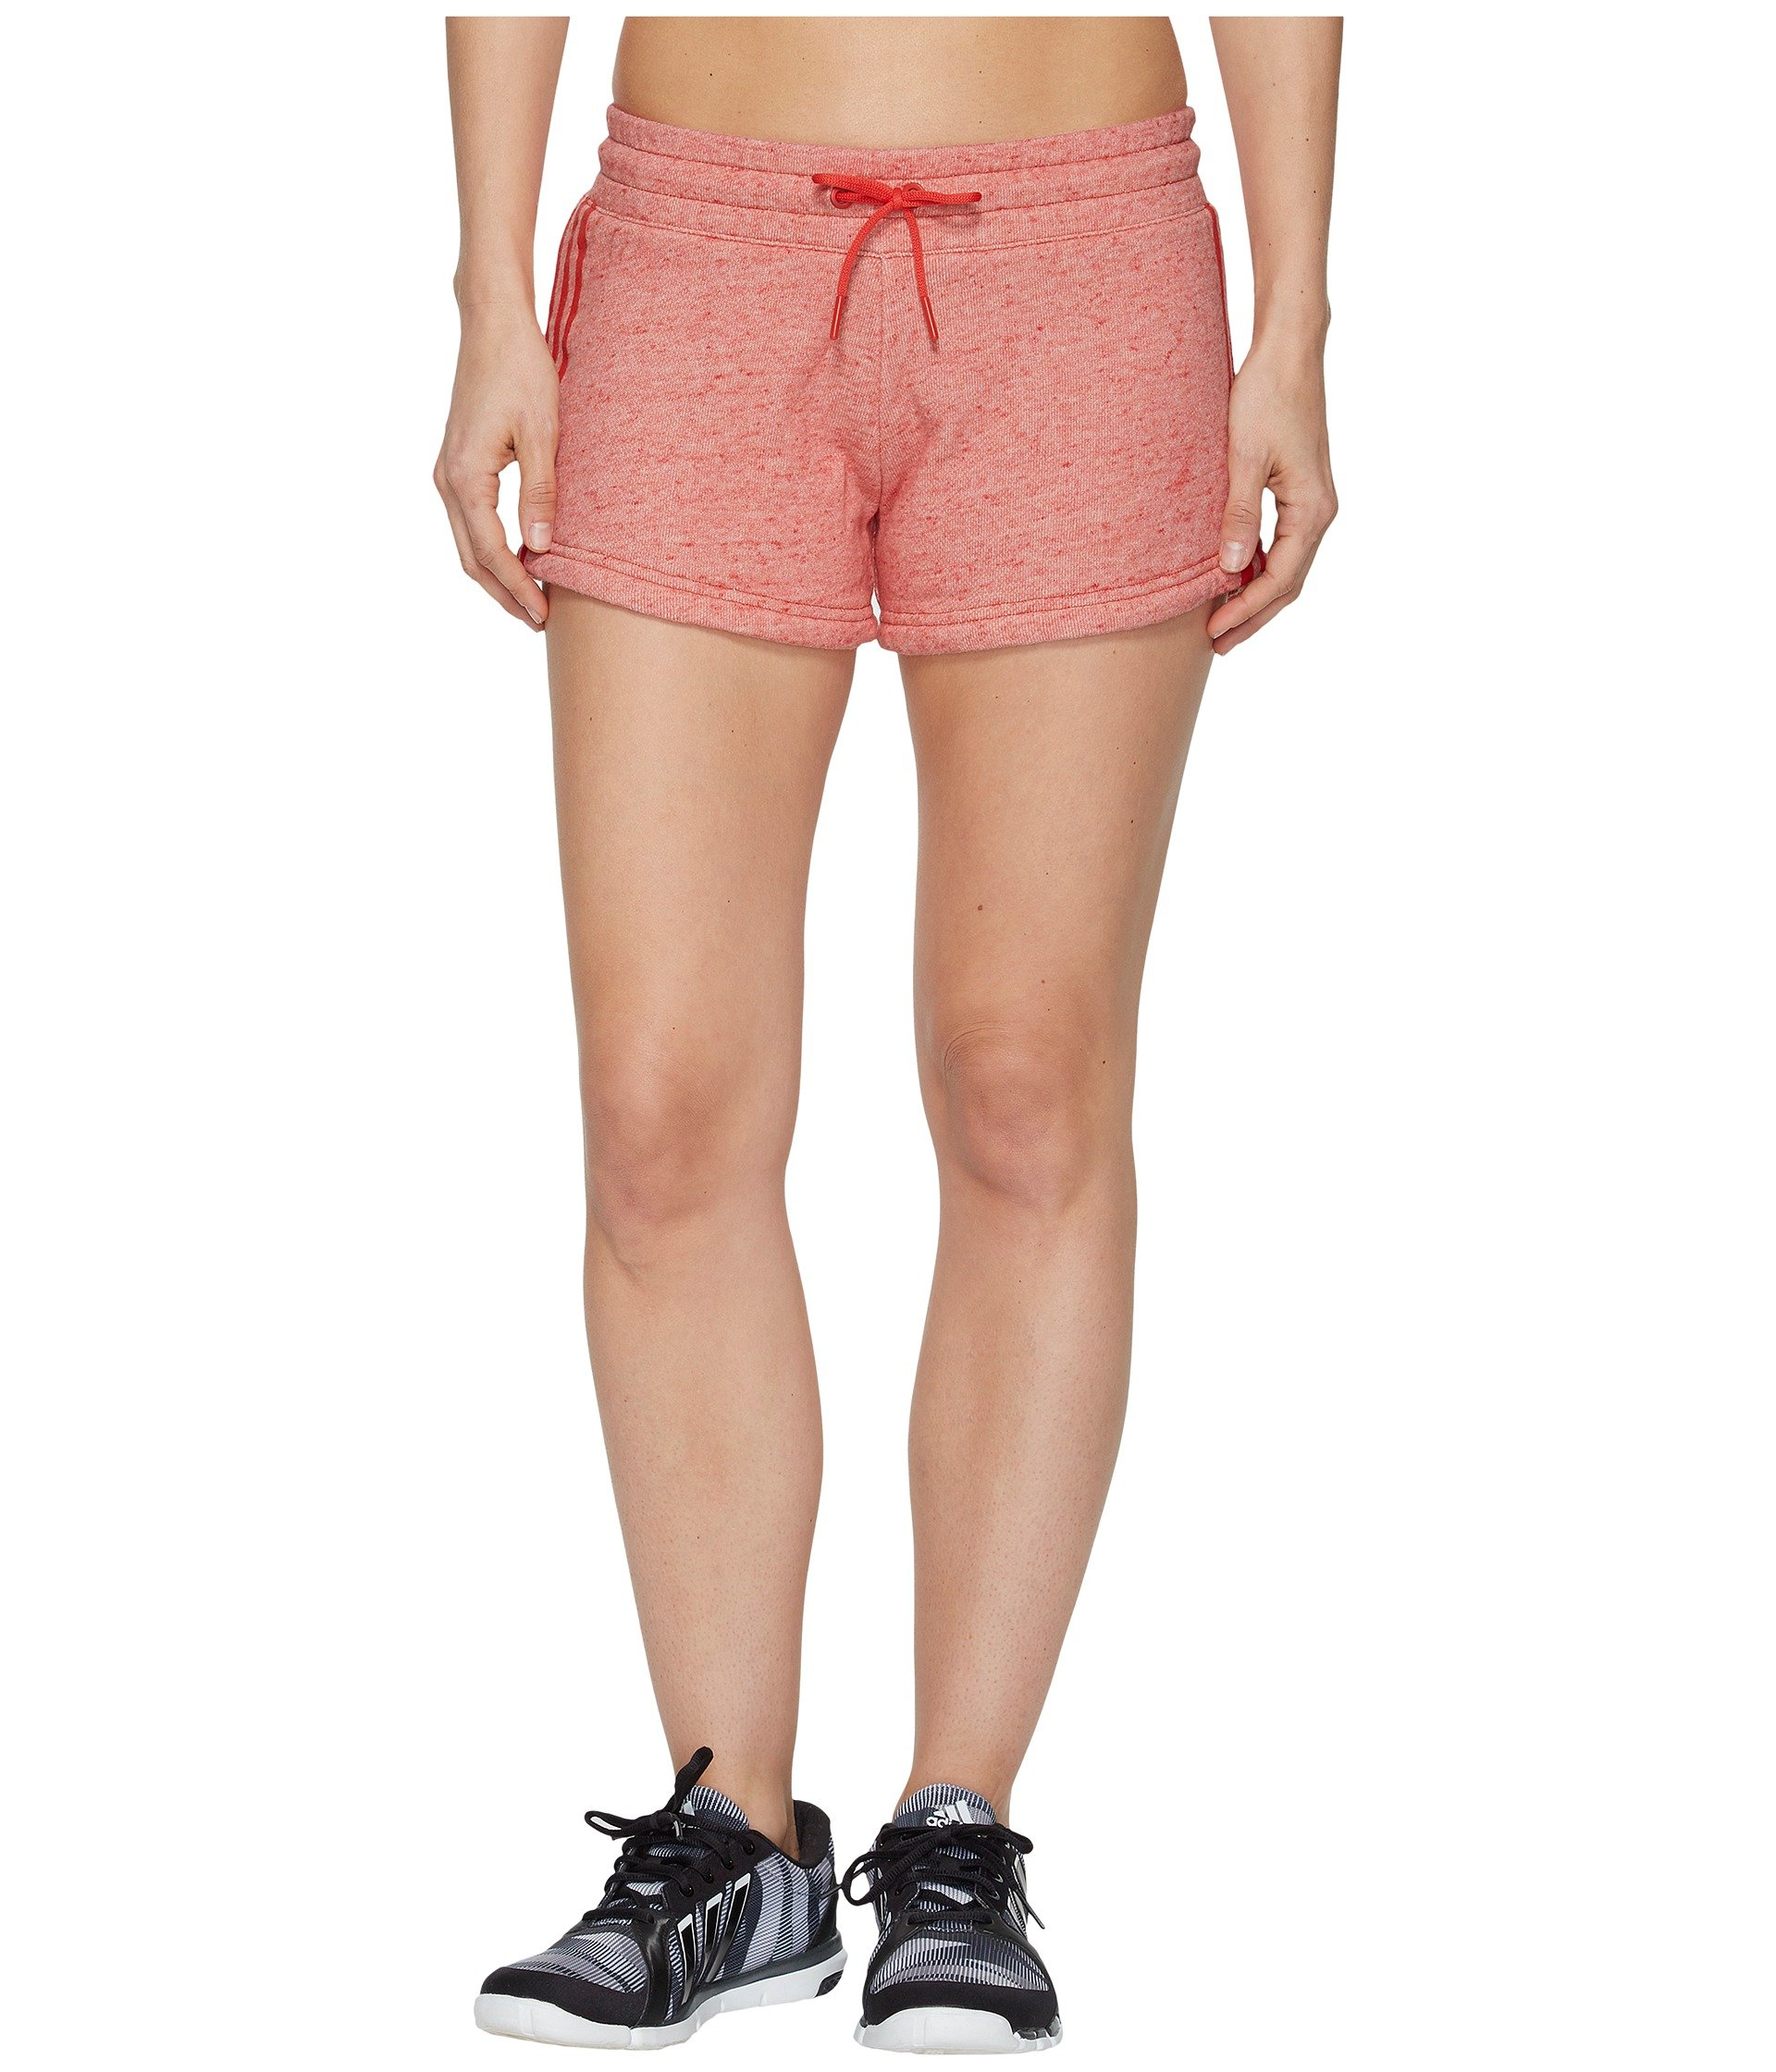 adidas Womens Athletics Sport 2 Street Shorts, Mélange/Real Coral, Small by adidas